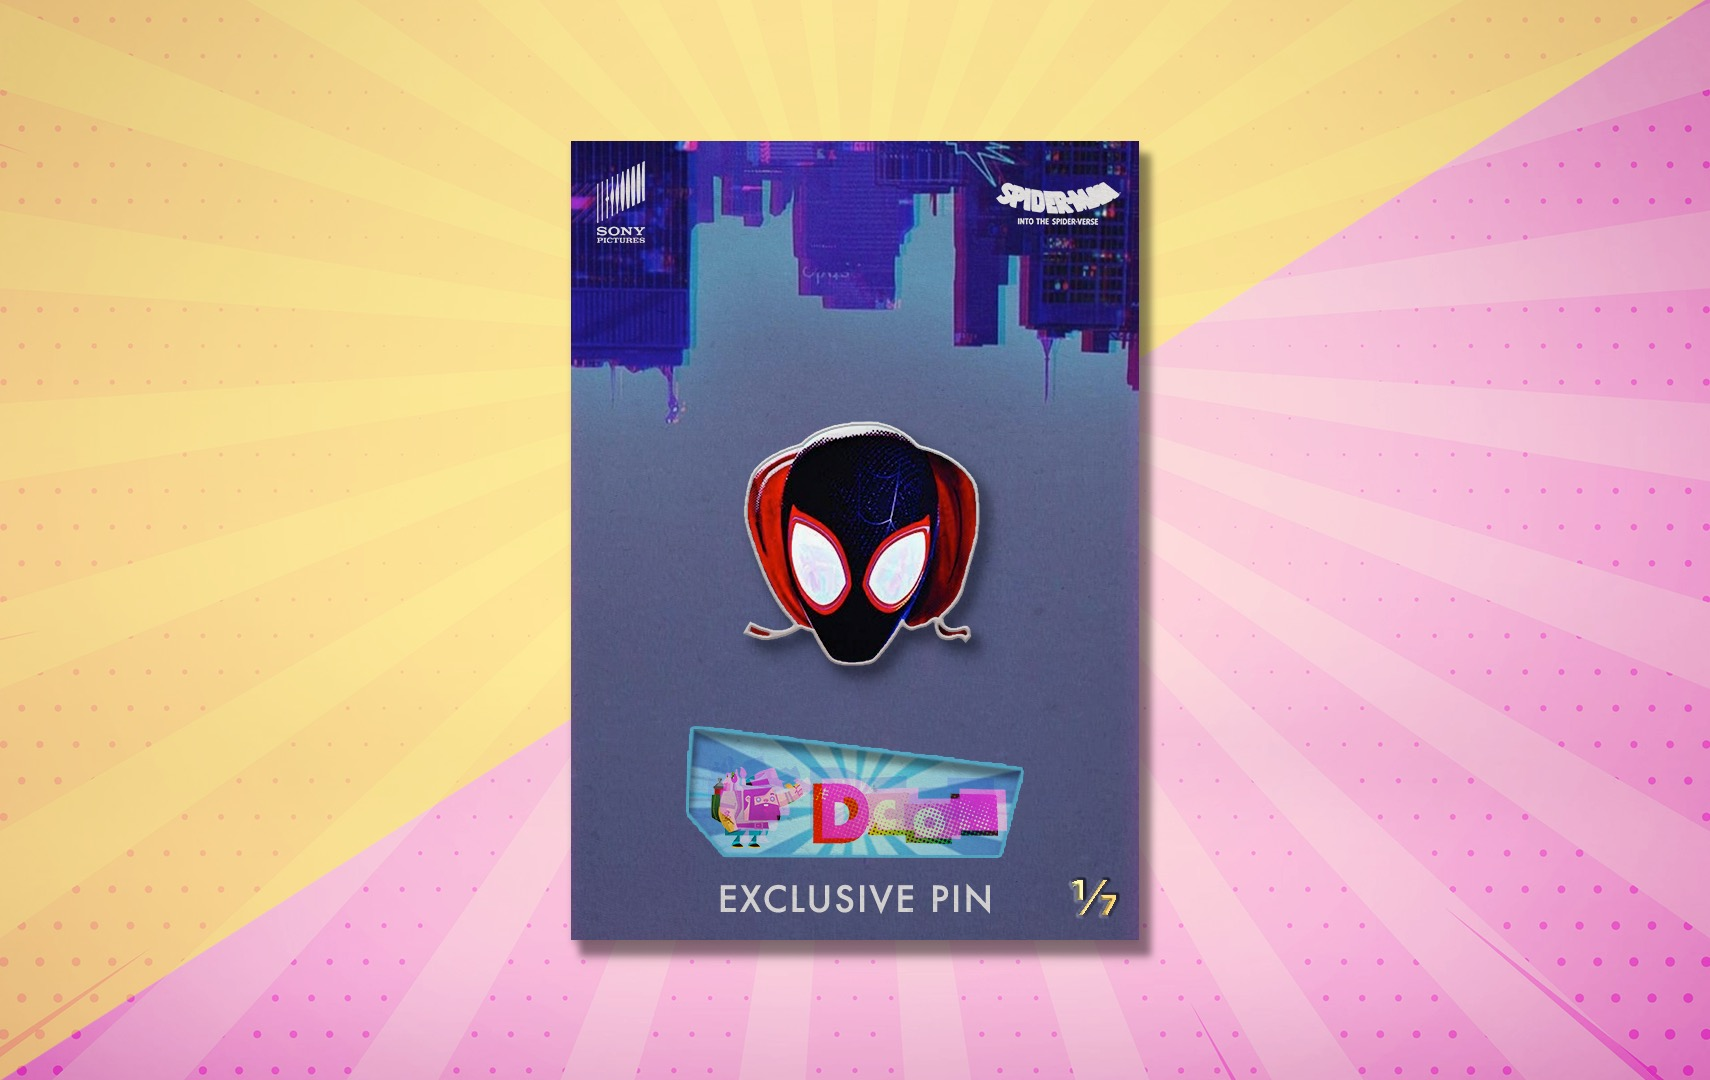 DC_DCon_Deck_Spiderverse_Pin_01b.jpeg